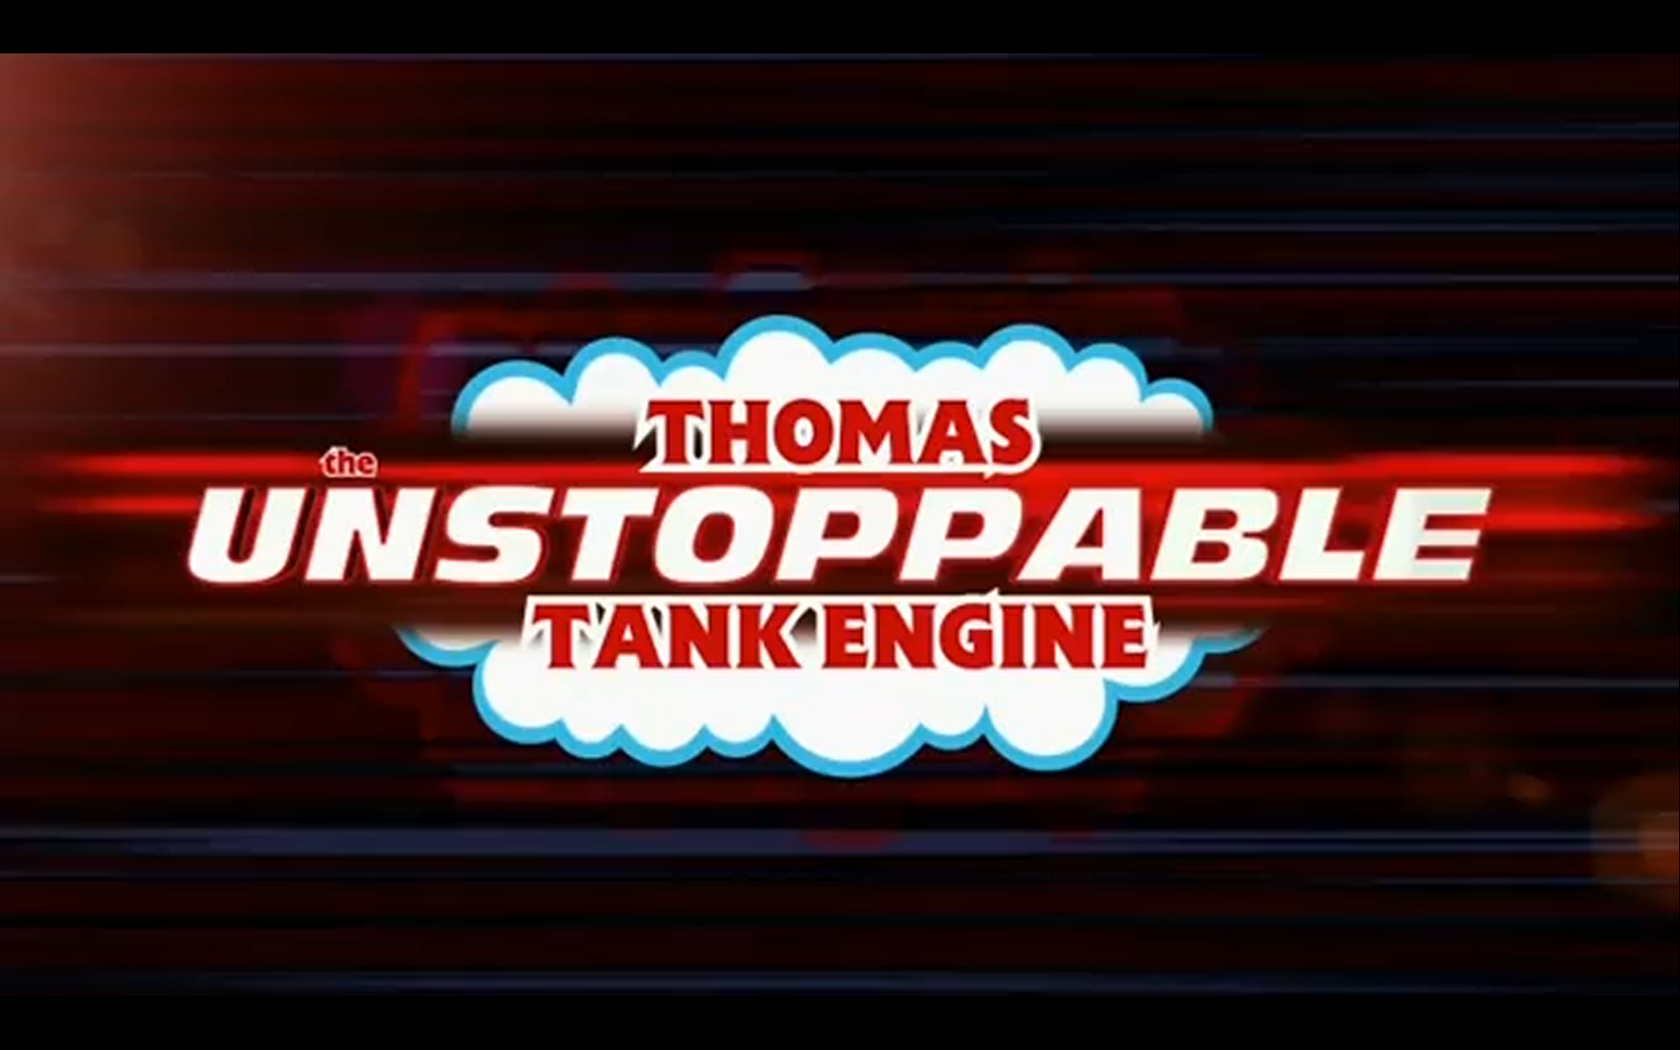 Image boco in trainz thomas and friends png scratchpad fandom - Thomas The Unstoppable Pic Source